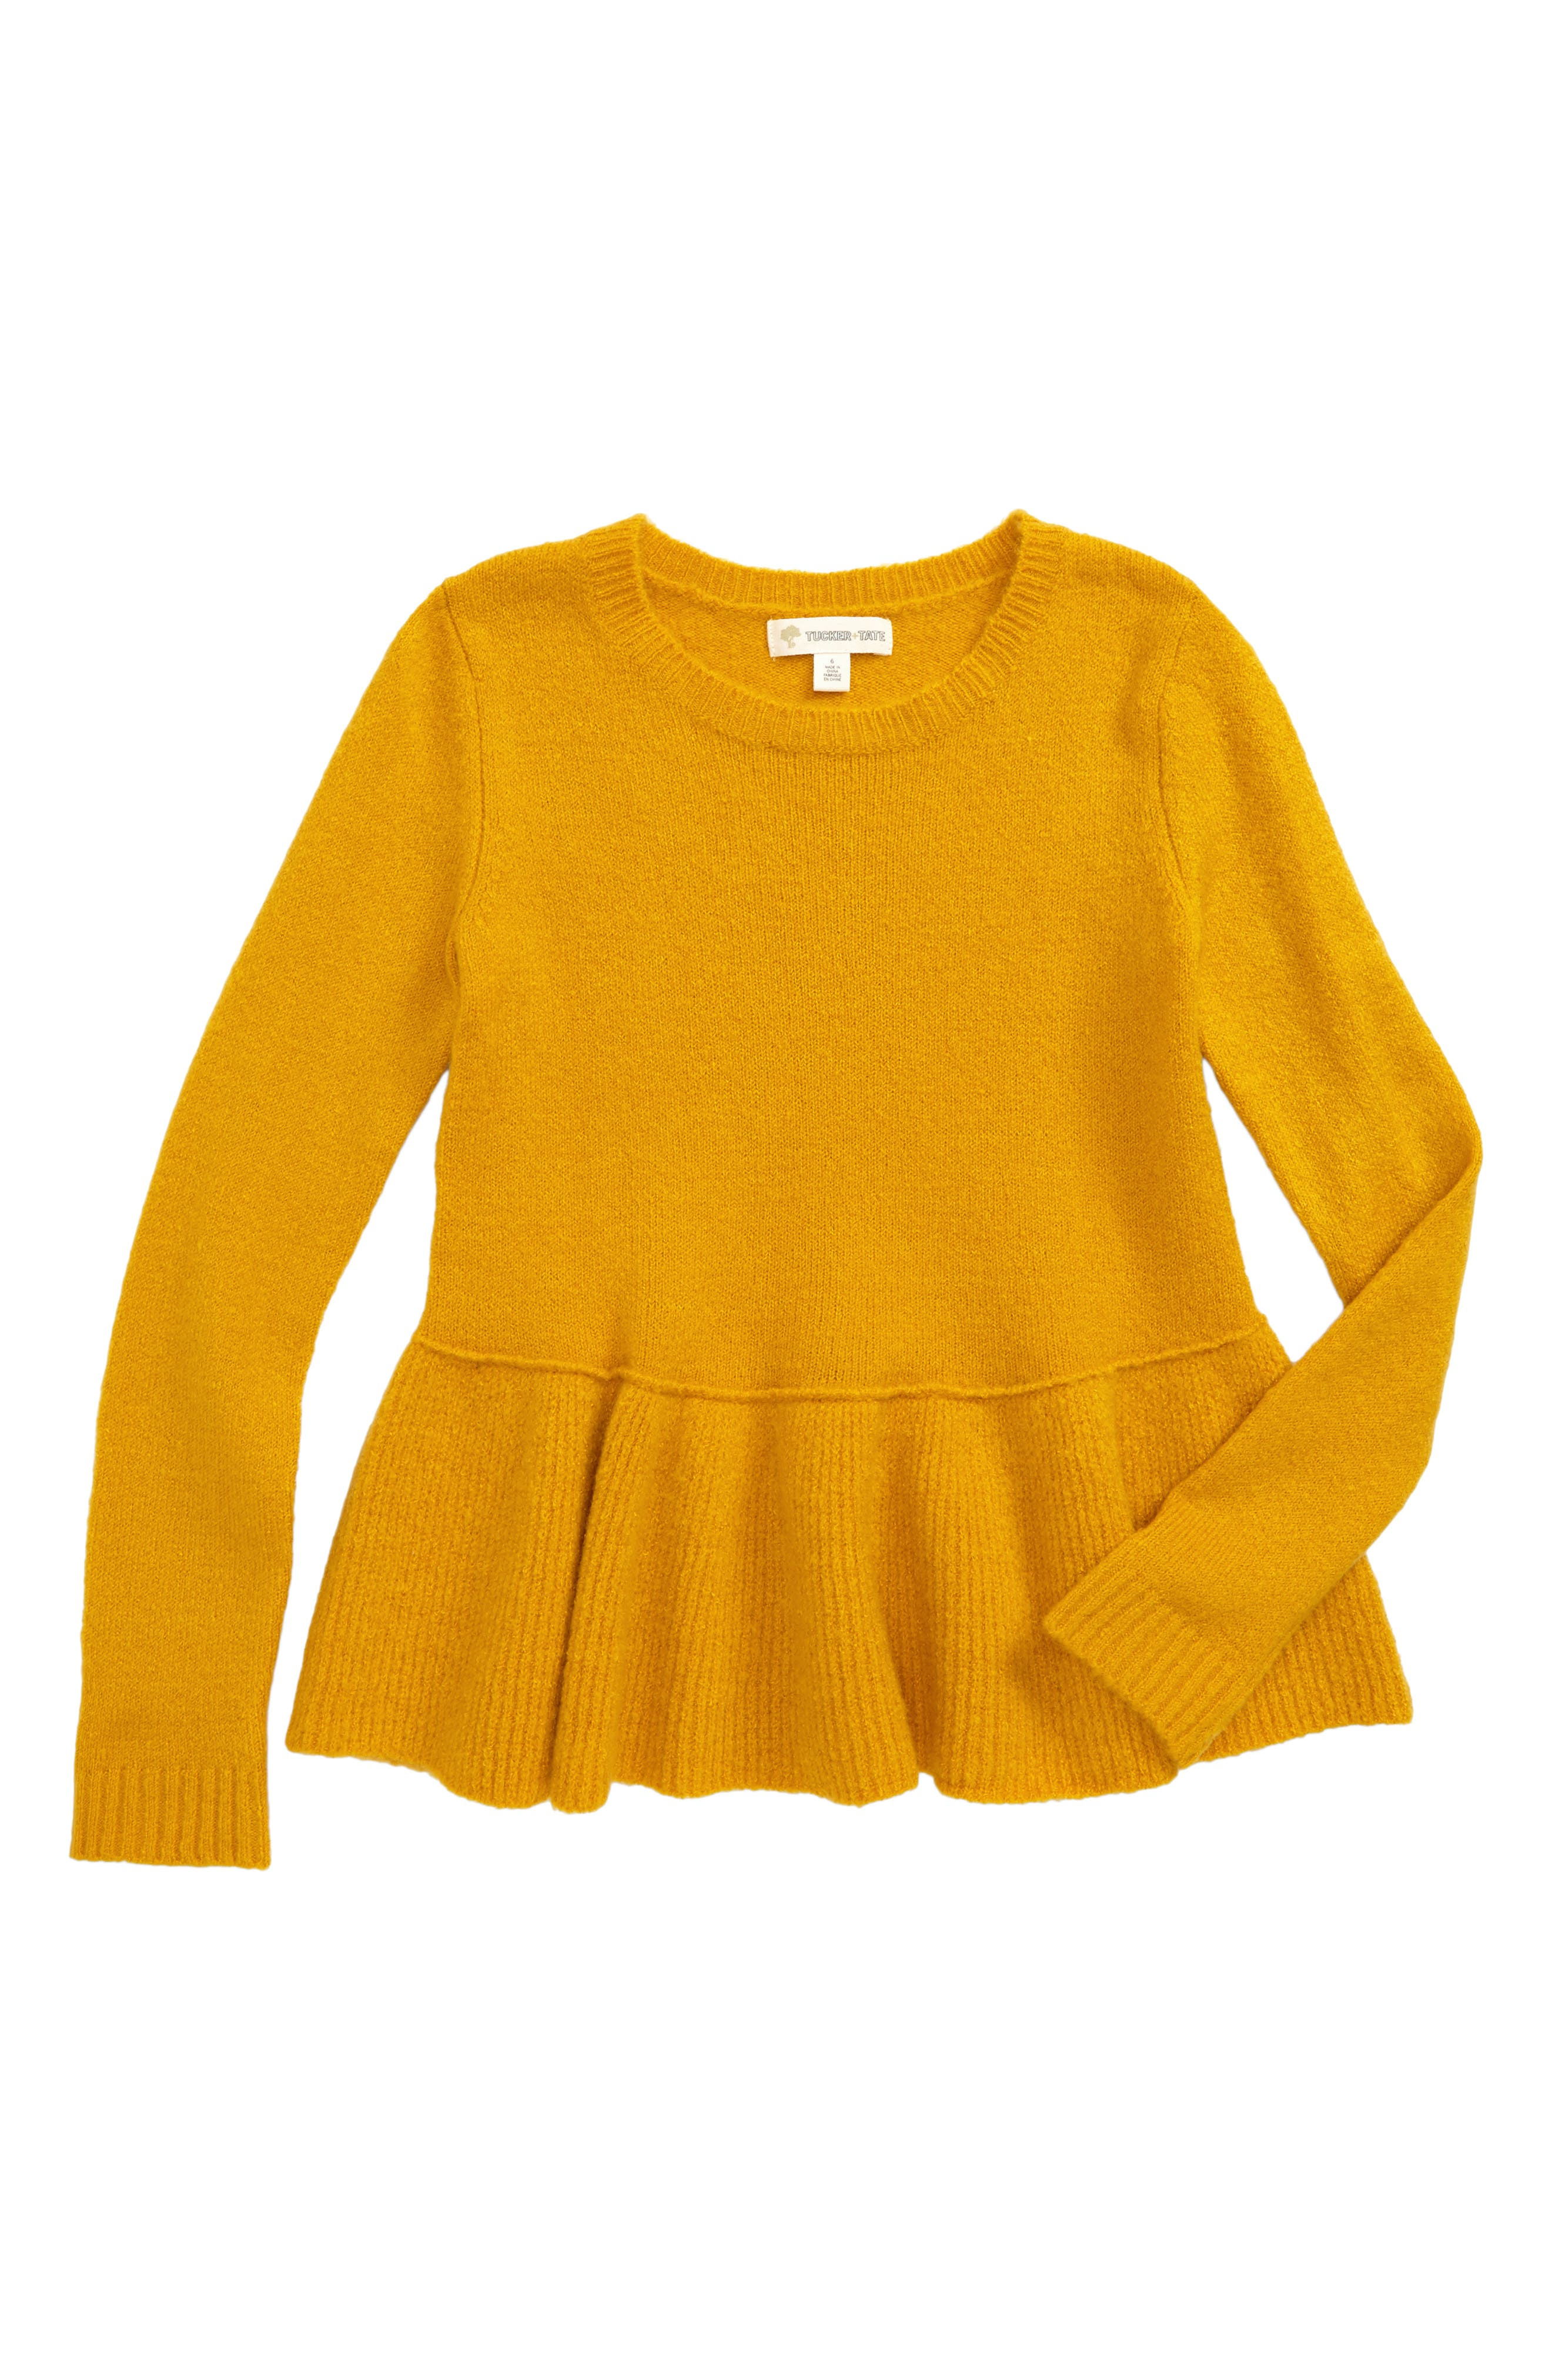 Tucker + Tate Ruffle Hem Sweater (Toddler Girls, Little Girls & Big Girls)